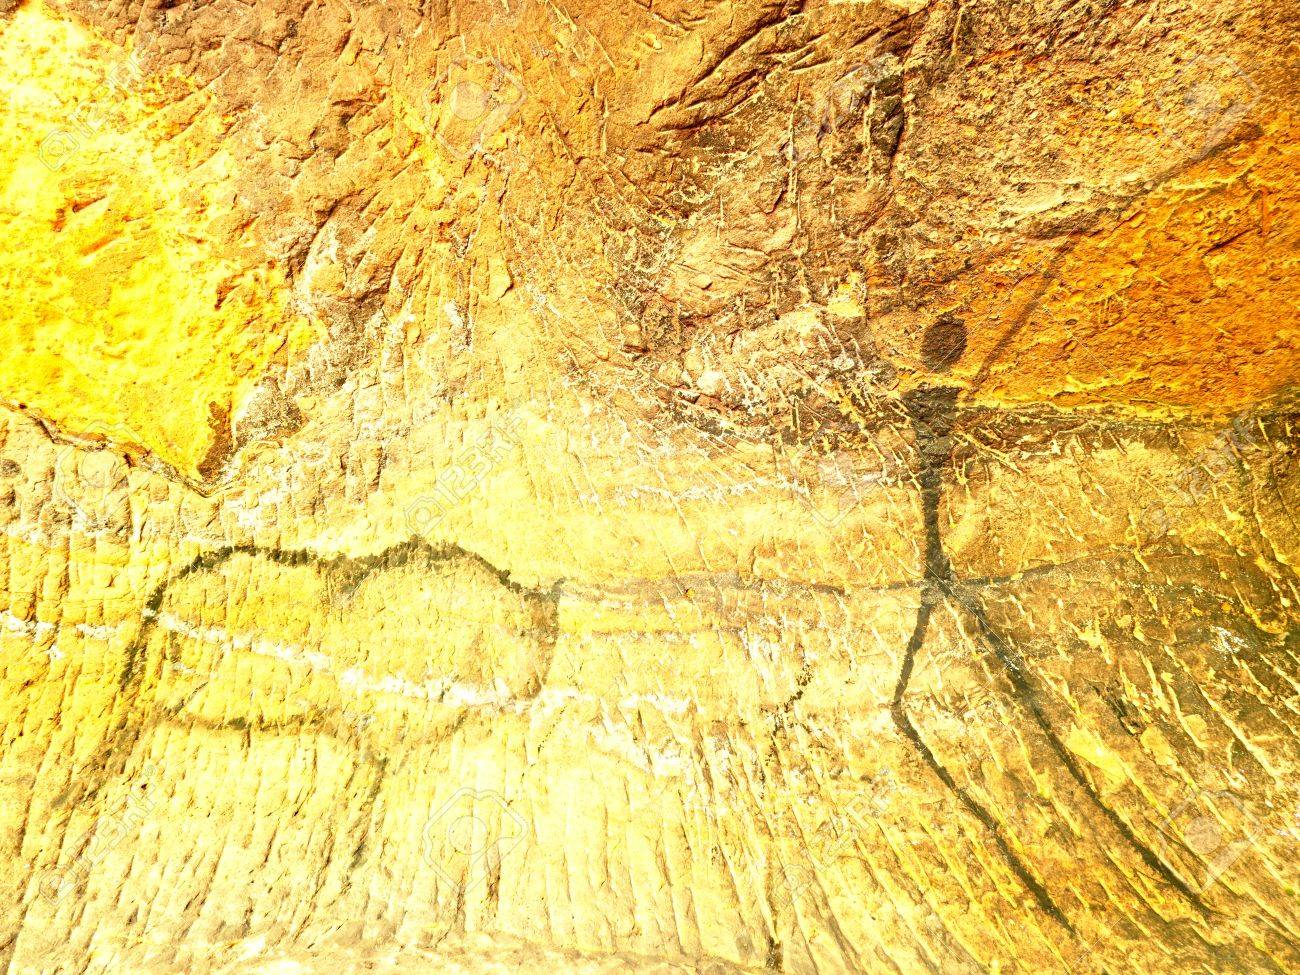 Buffalo Hunting. Paint Of Human Hunting On Sandstone Wall ...